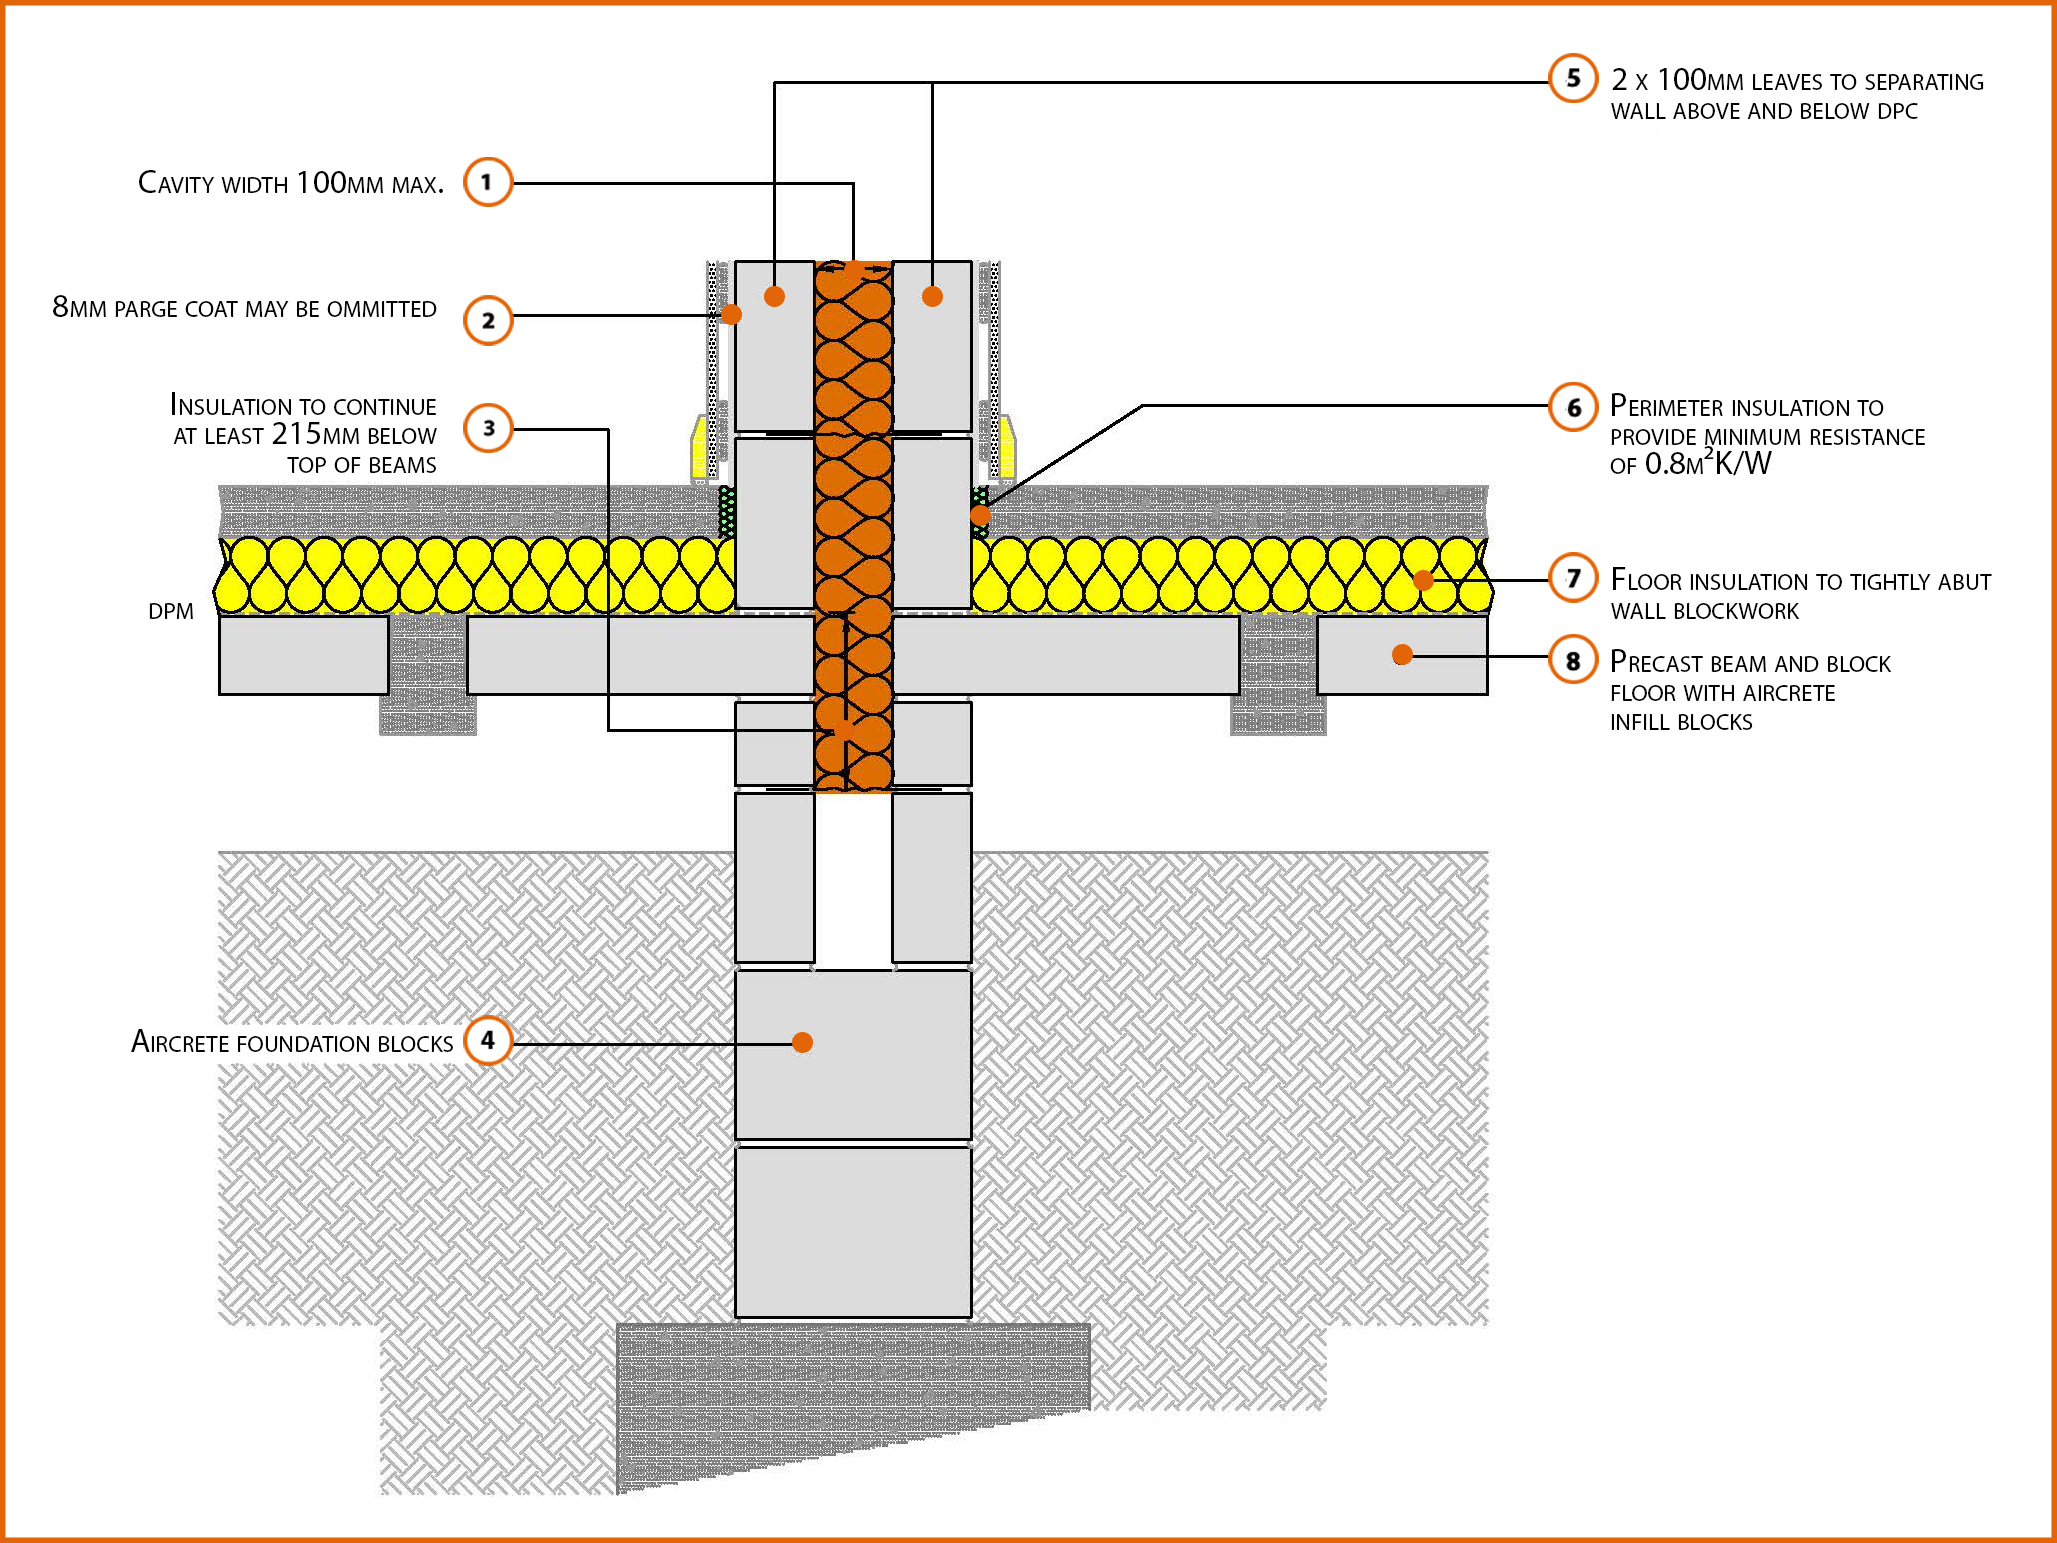 P1pcff1 Suspended Beam And Block Floor Insulation Above